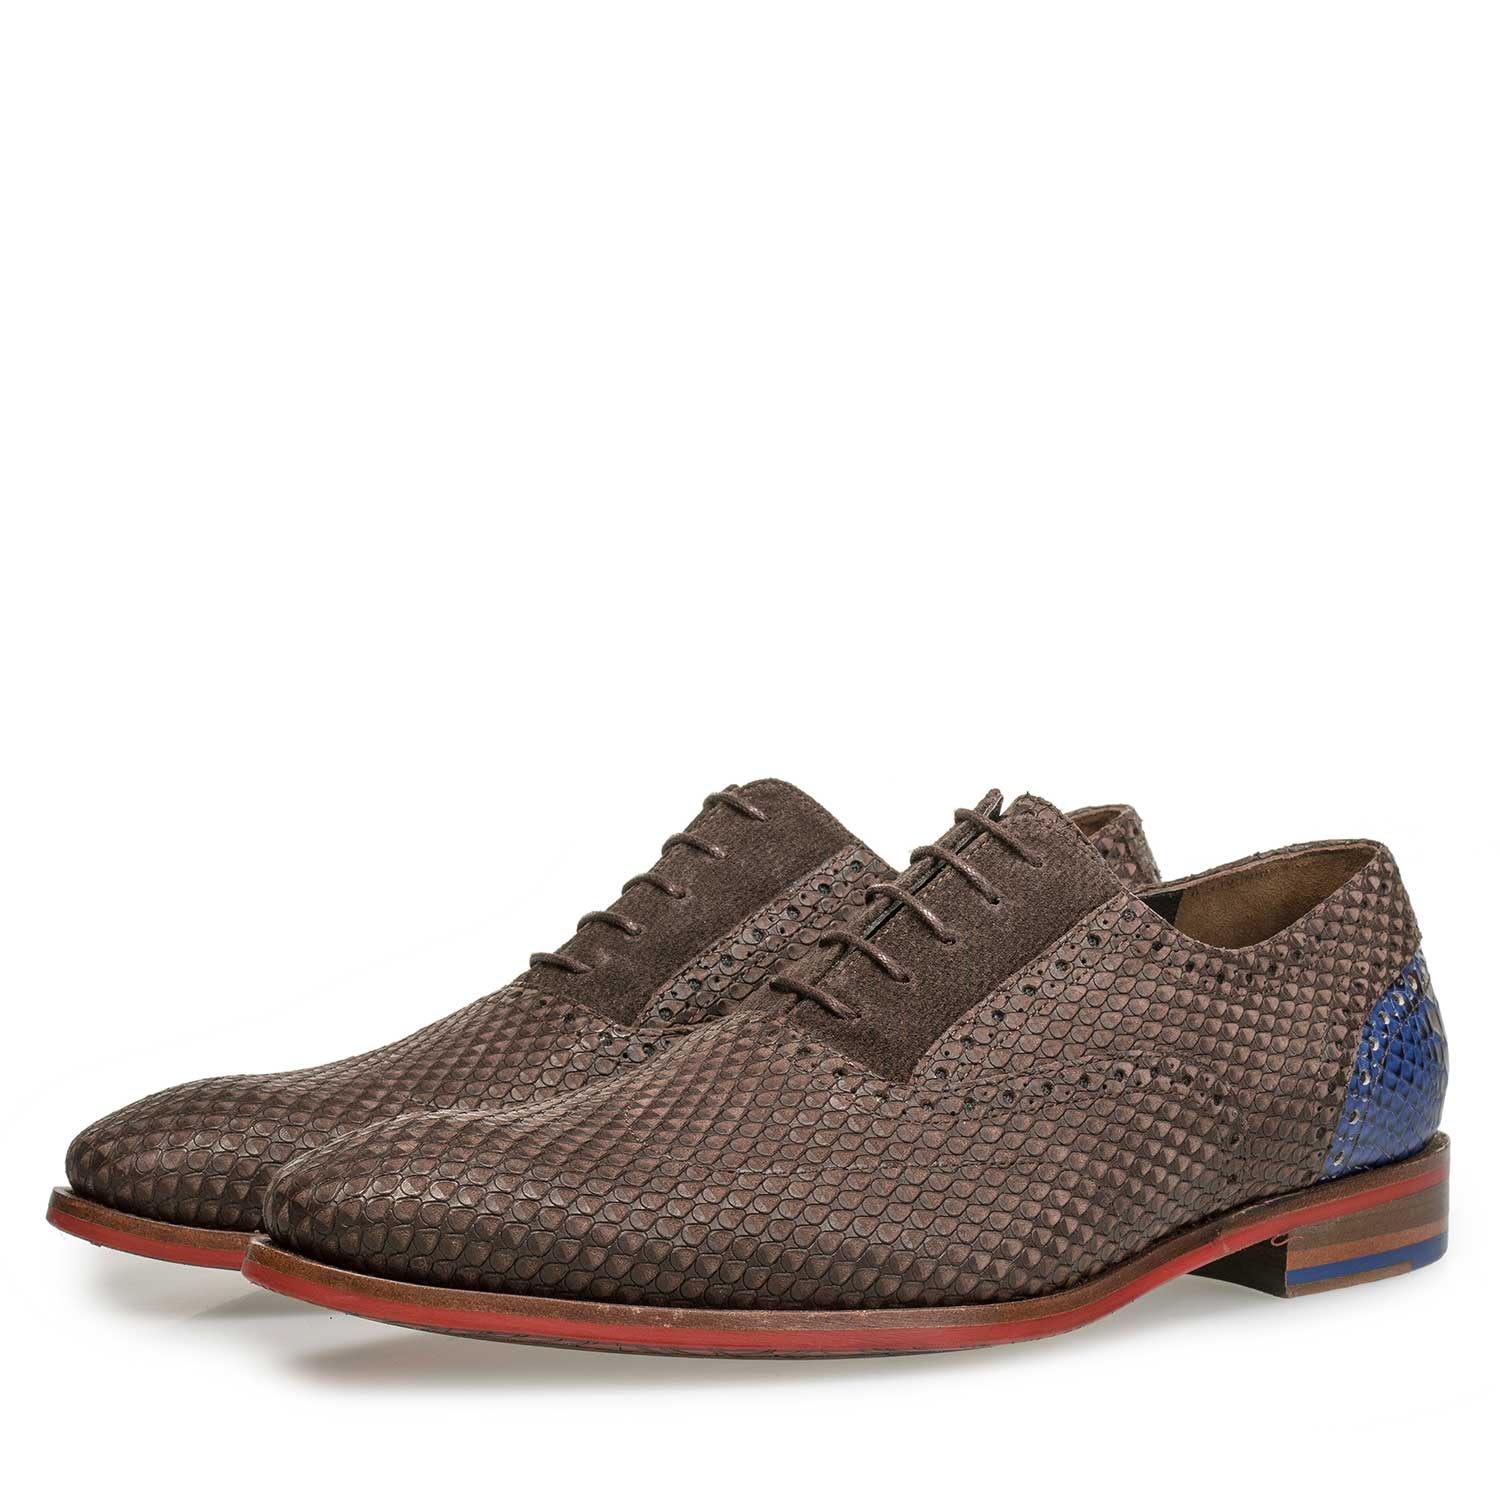 19119/00 - Brown nubuck leather lace shoe with snake print